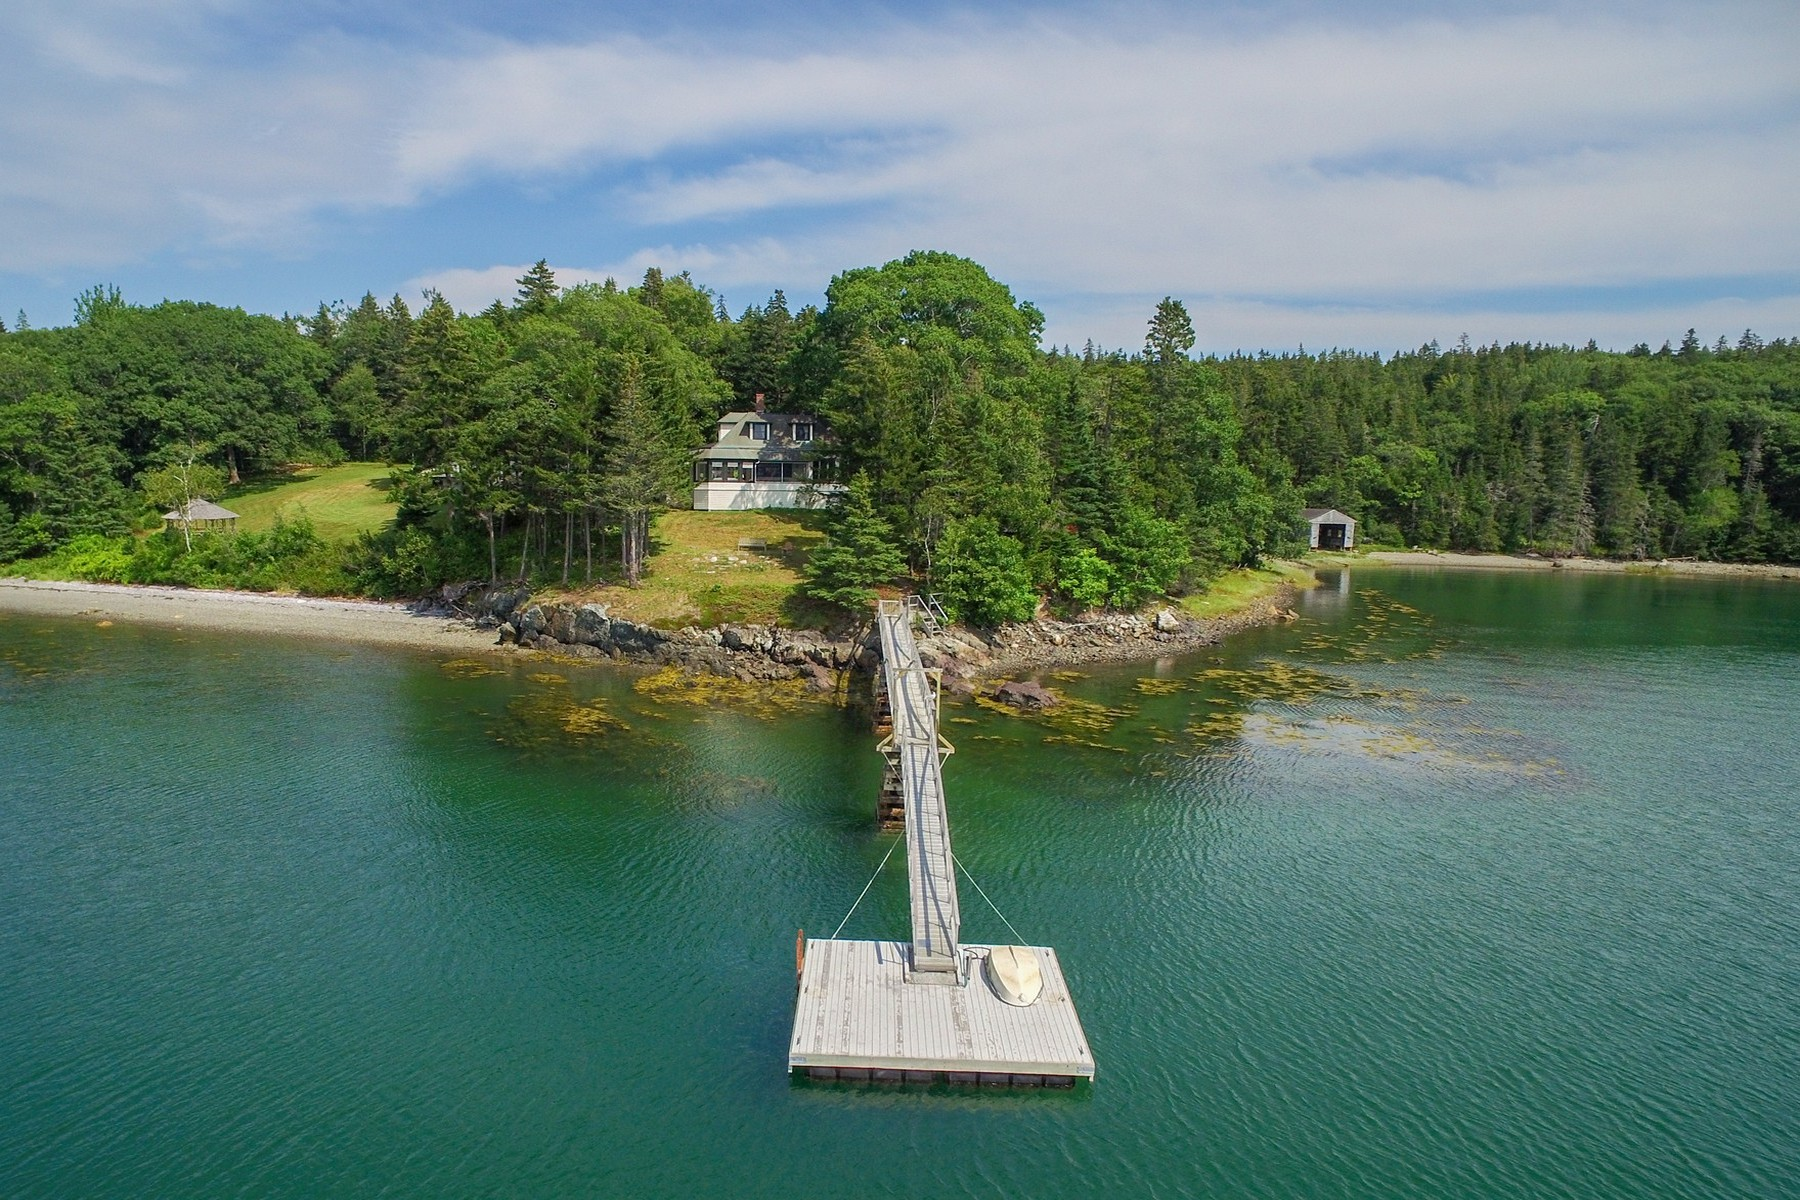 Single Family Home for Sale at Kro Krest 17 Kro Krest Lane Sorrento, Maine, 04677 United States